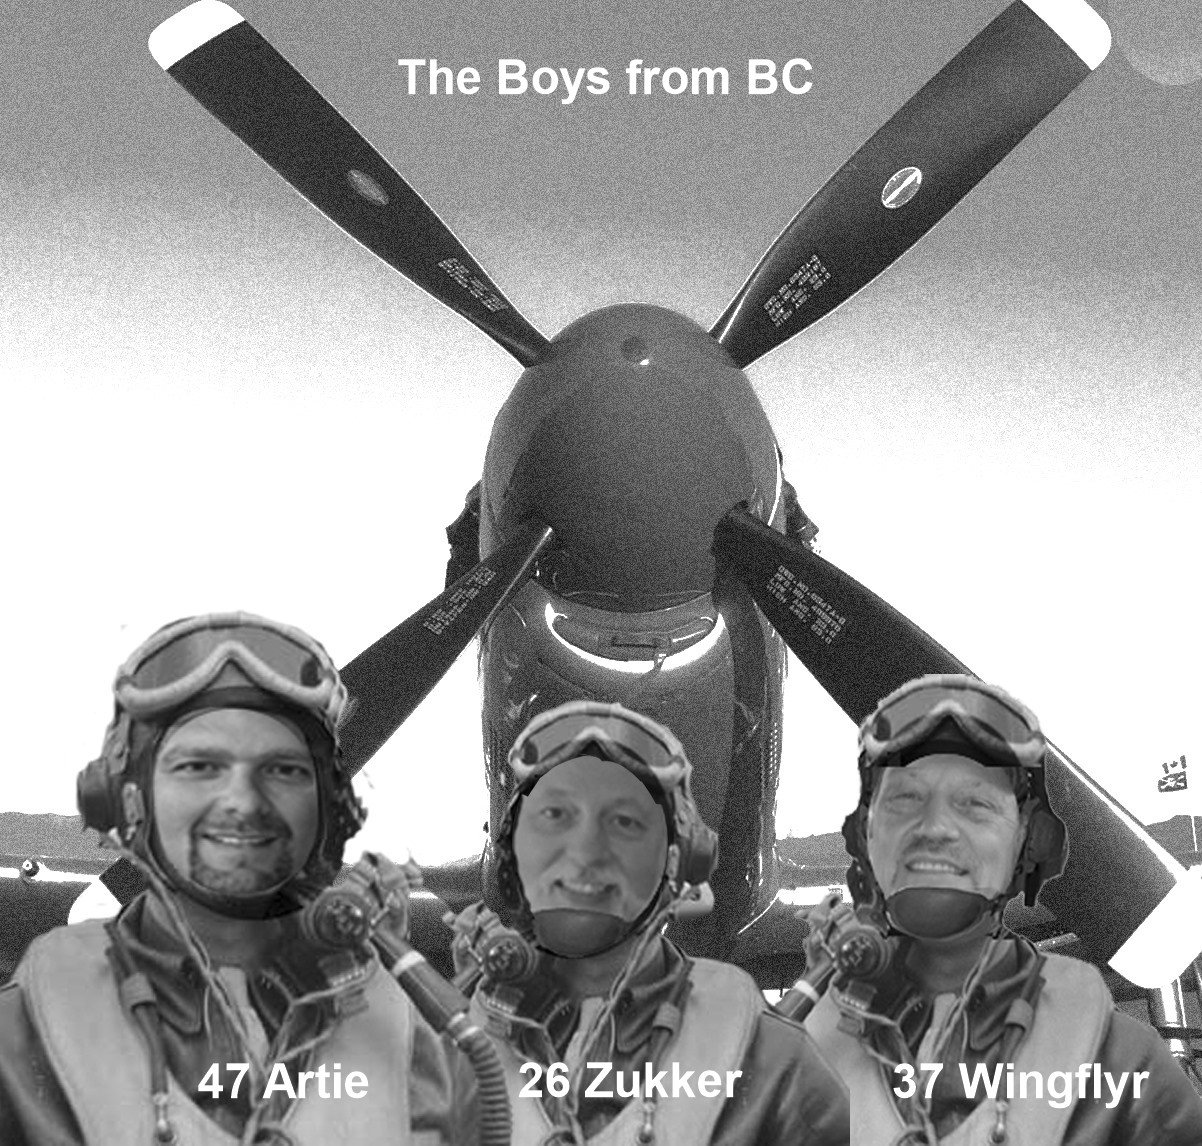 The Boys from BC